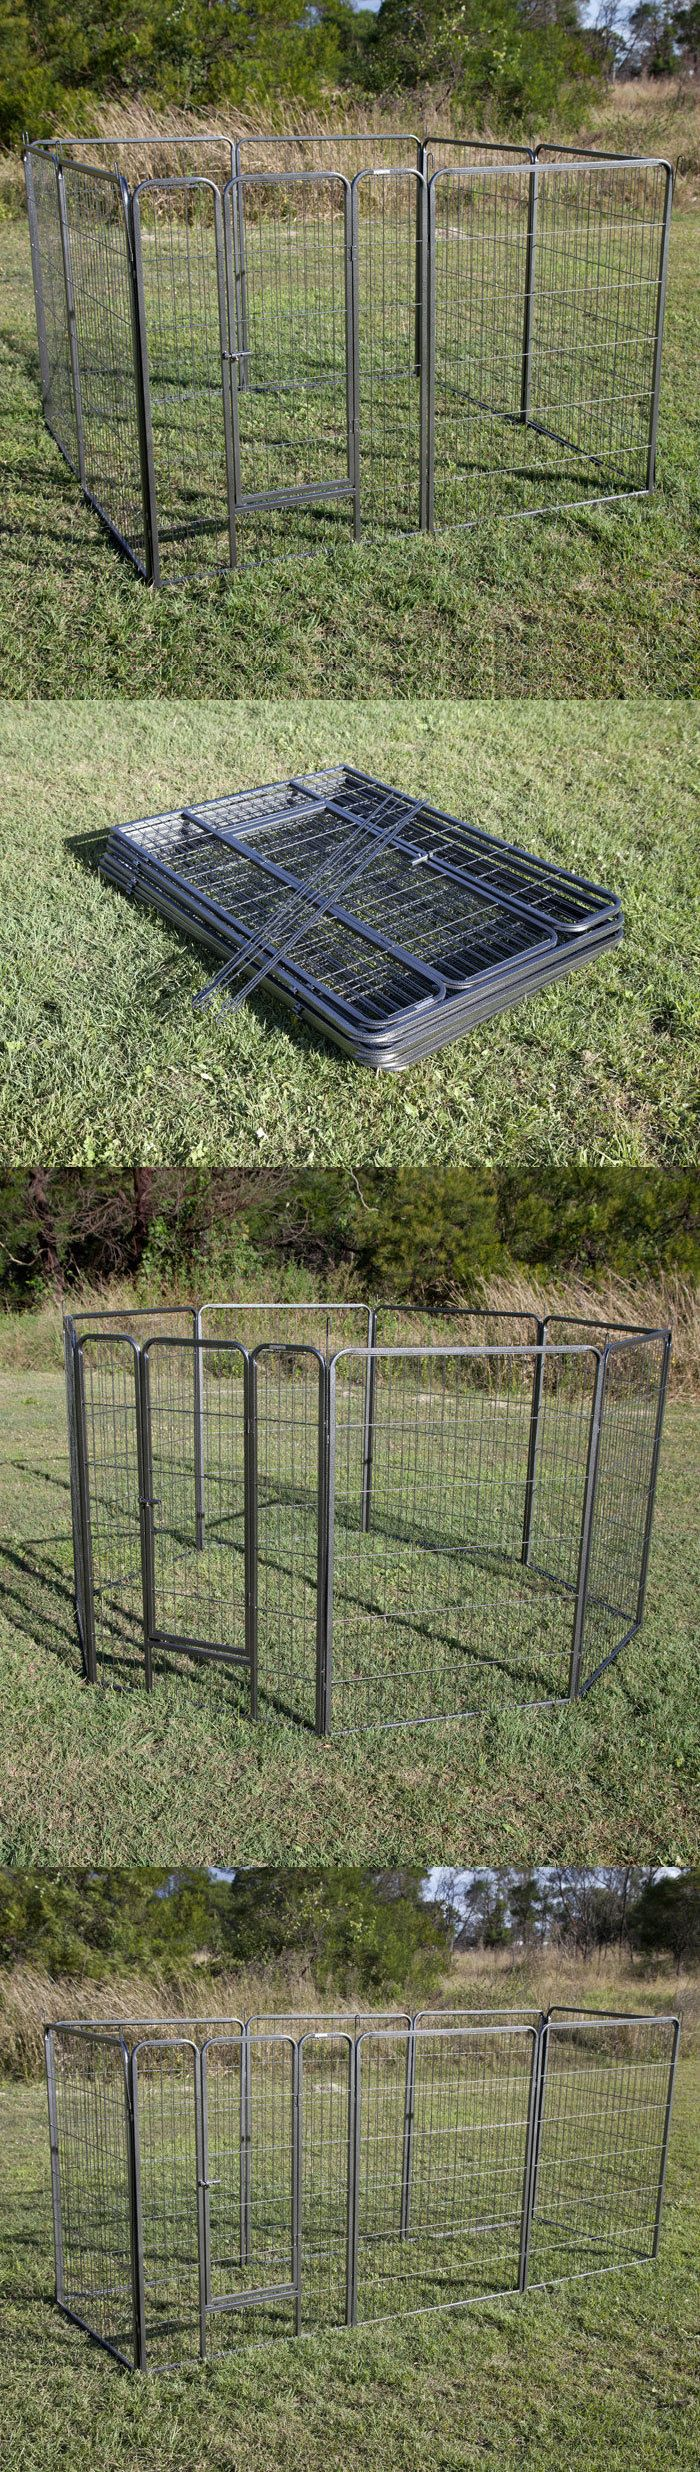 Fences and Exercise Pens 20748: 43 Height 8 Panel Pet Pen Enclosure Cage Playpen Run For Dog Chicken BUY IT NOW ONLY: $99.0